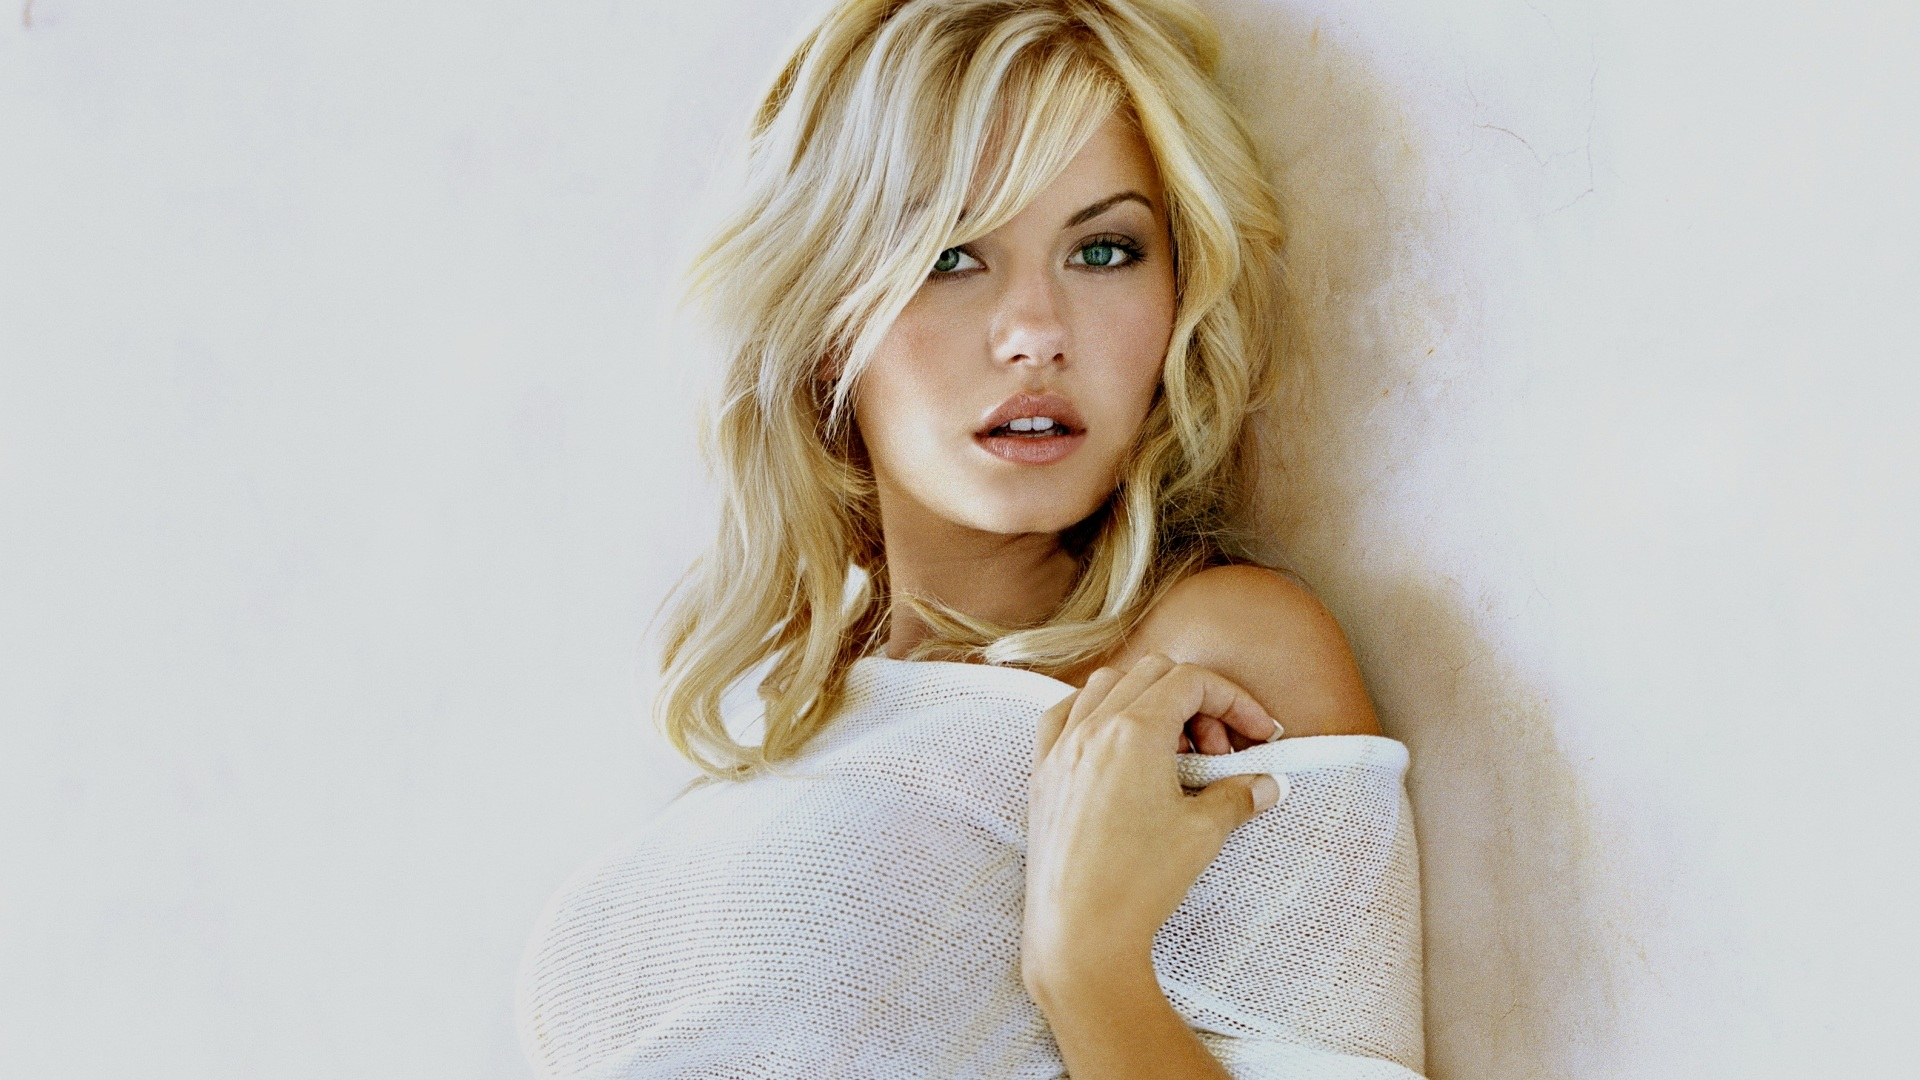 Wallpaper elisha cuthbert 04 1920x1200 hd picture image - Steamgirl download ...